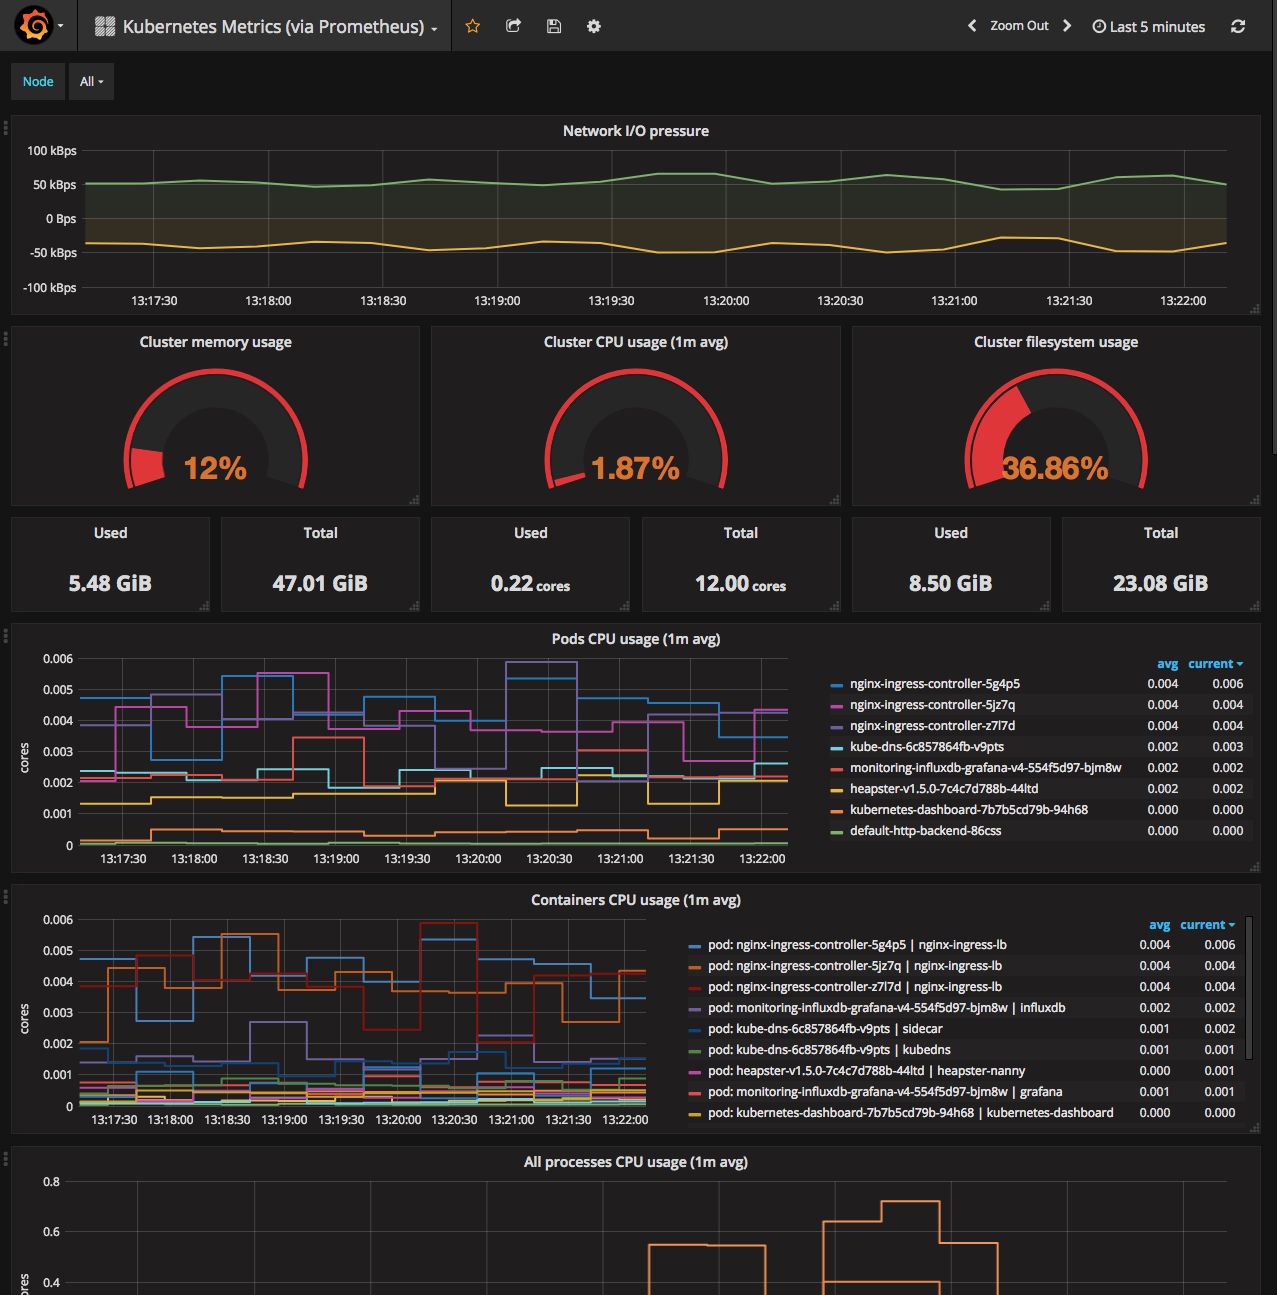 grafana dashboard image